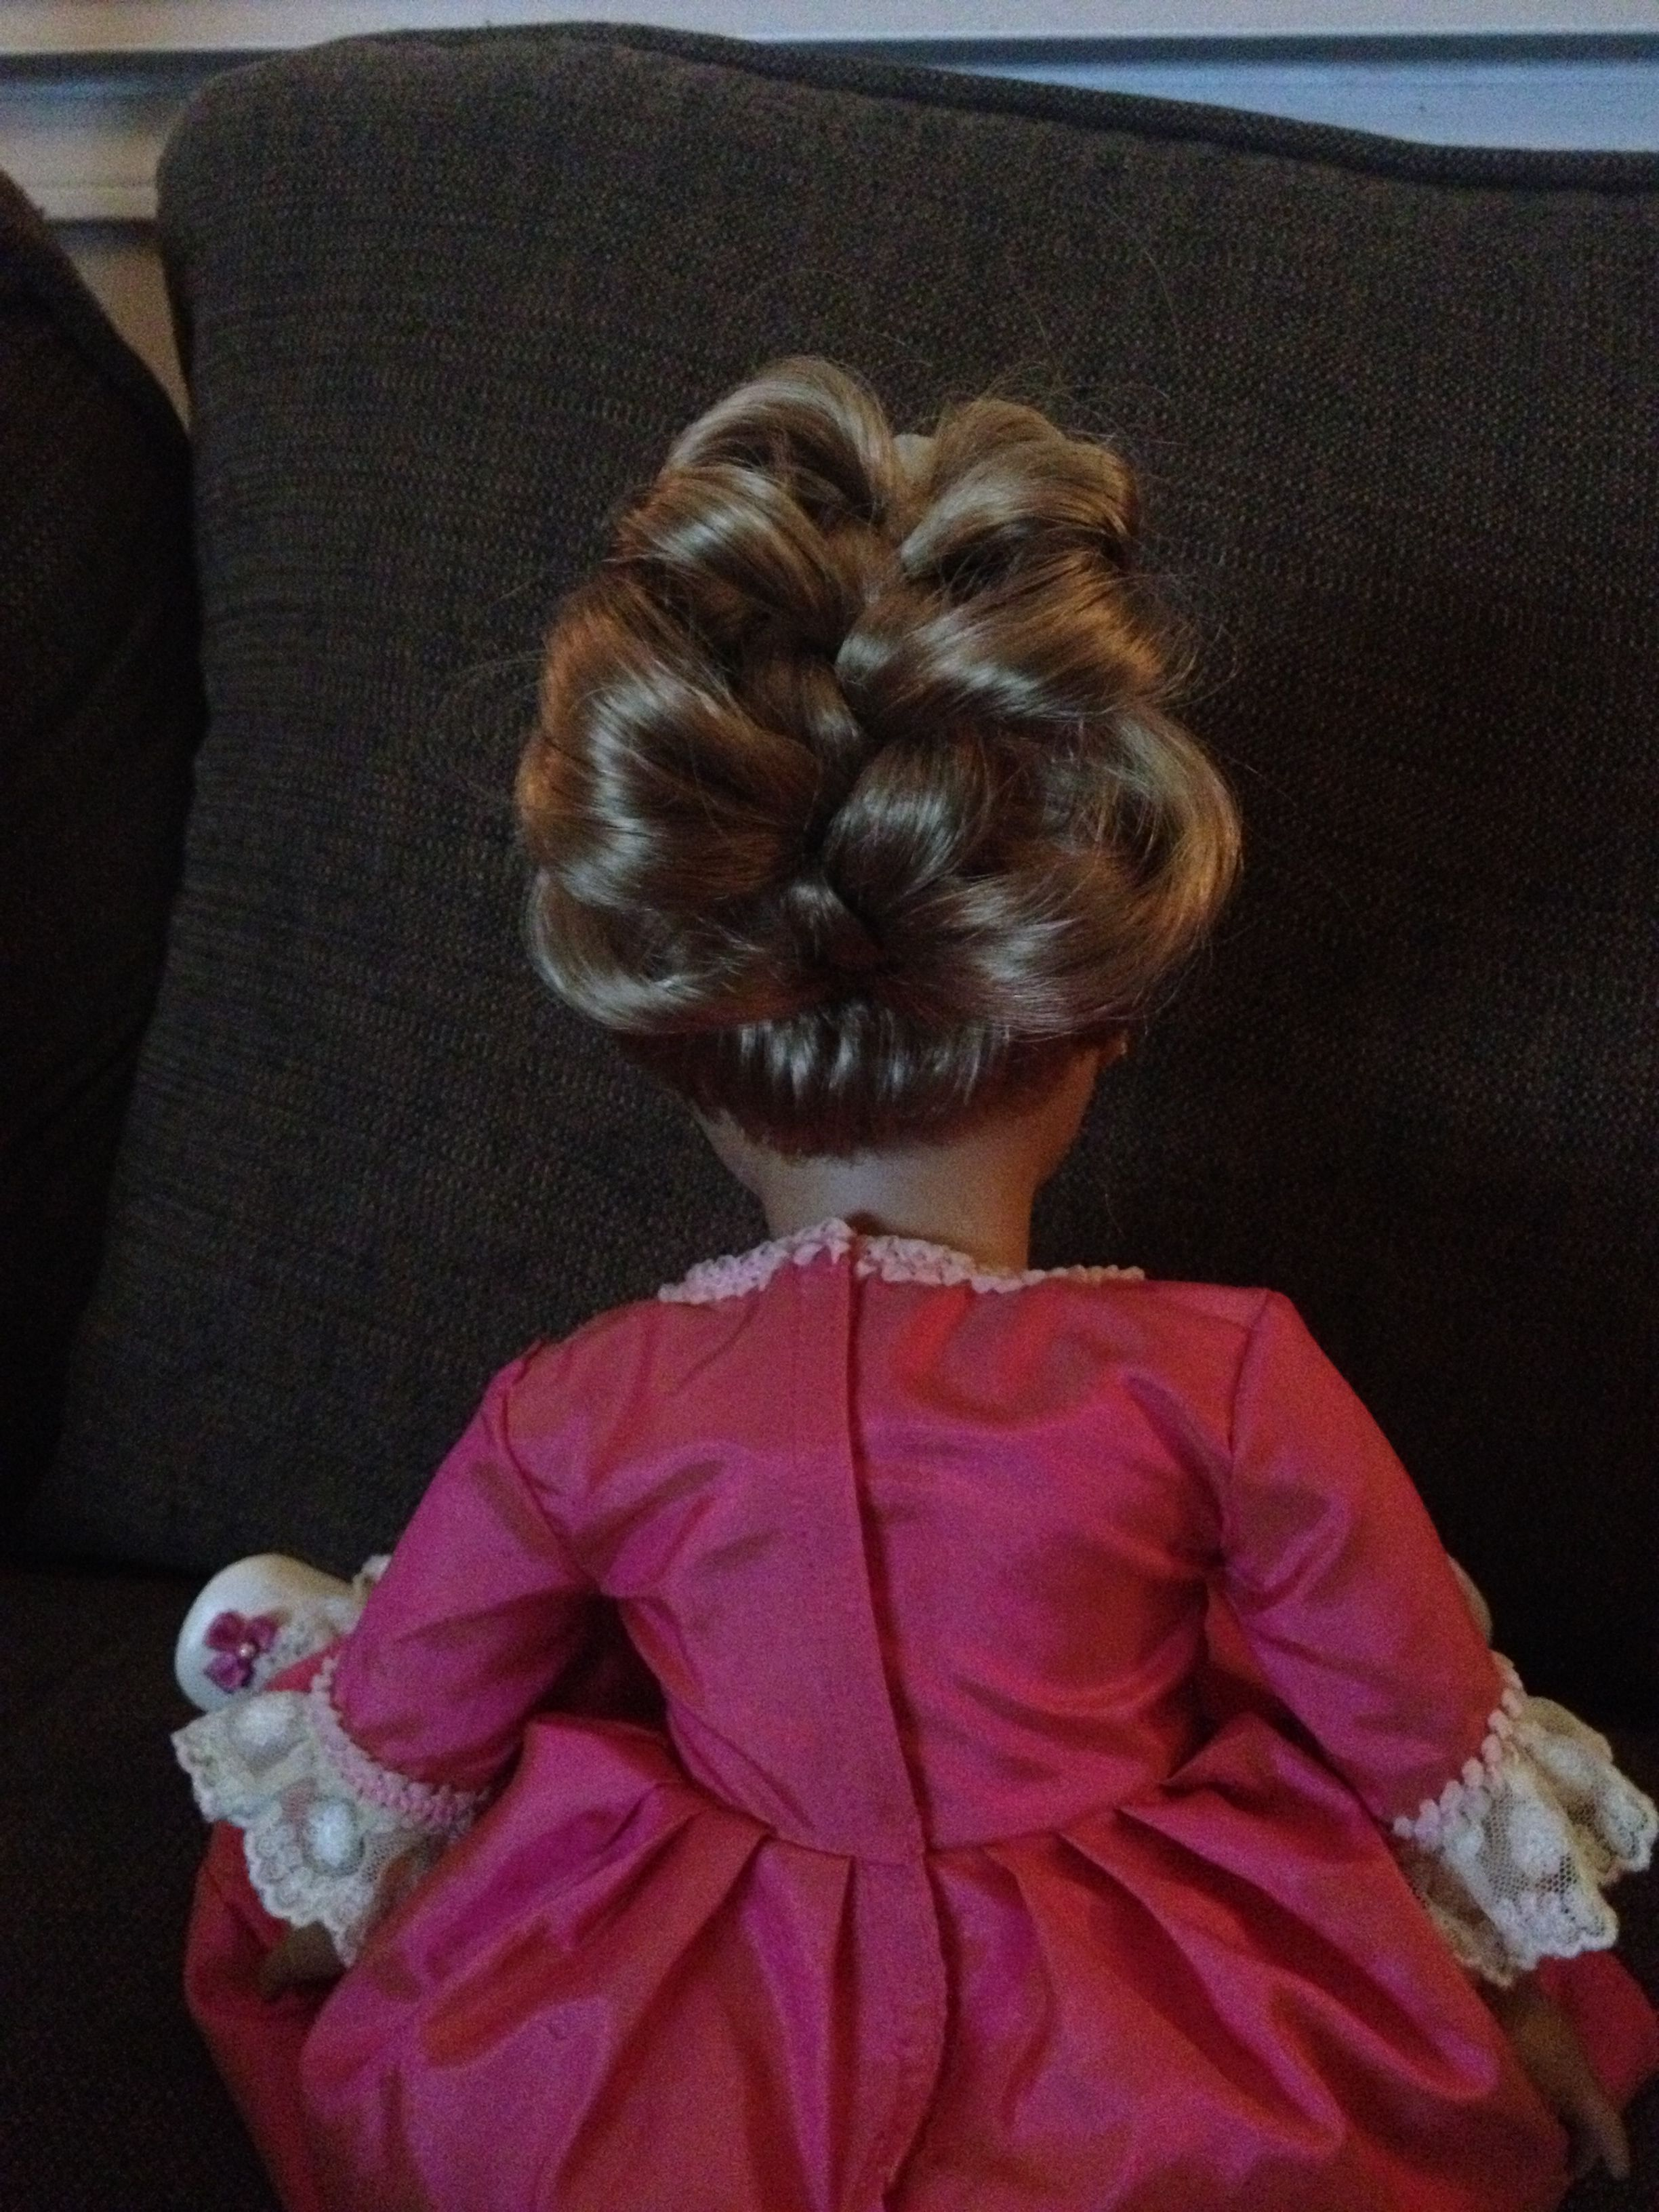 A hairstyle I did on my American girl doll | American girl doll hairstyles, American girl ...